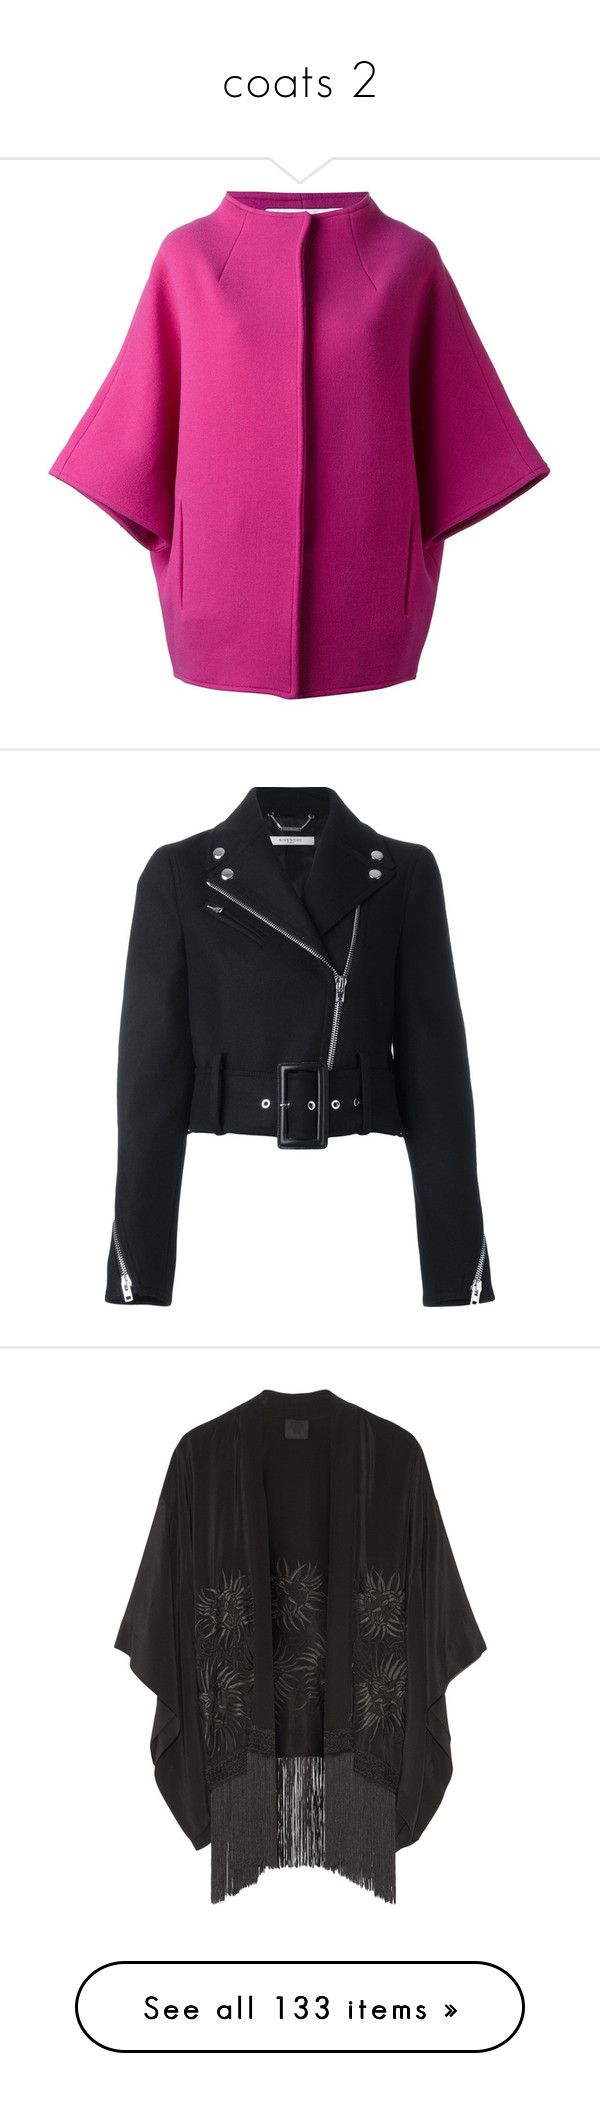 """""""coats 2"""" by leafmarie ❤ liked on Polyvore featuring outerwear, coats, purple coat, jackets, black, cropped moto jacket, rider jacket, biker jackets, long sleeve jacket and zip front jacket"""